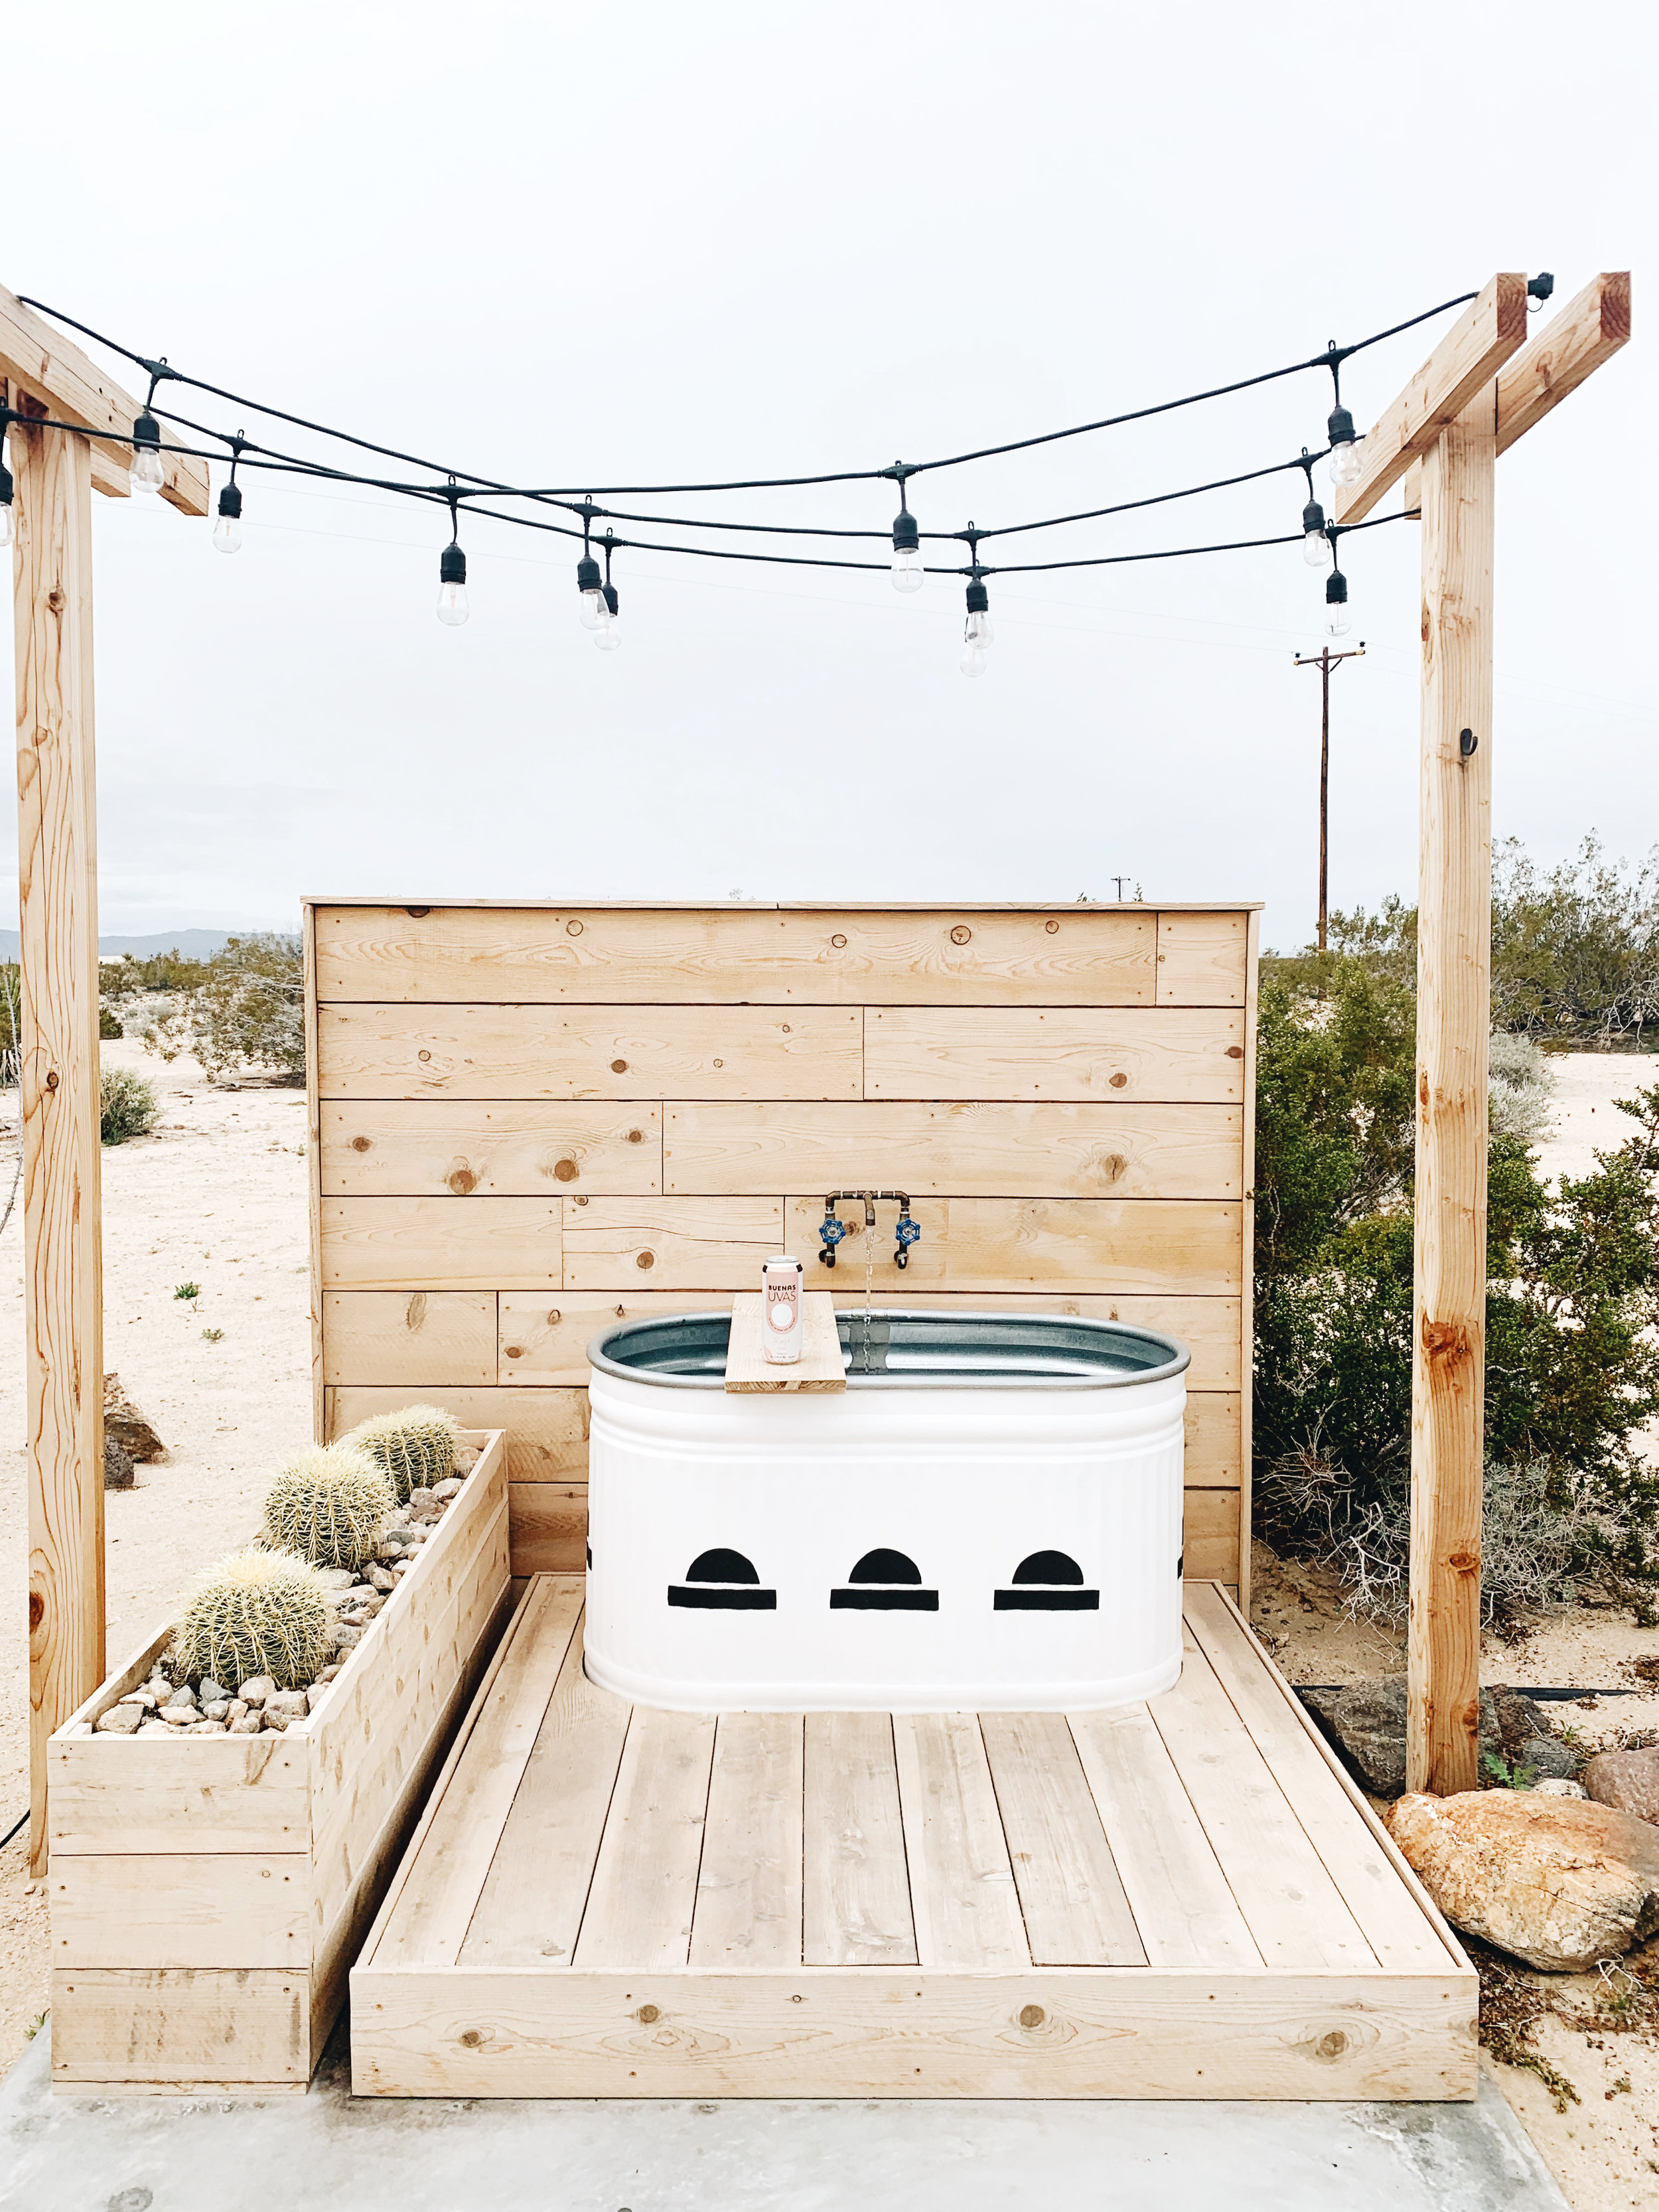 This Airbnb in Joshua Tree  was one of my favorites. The bathtub in the backyard was everything!!